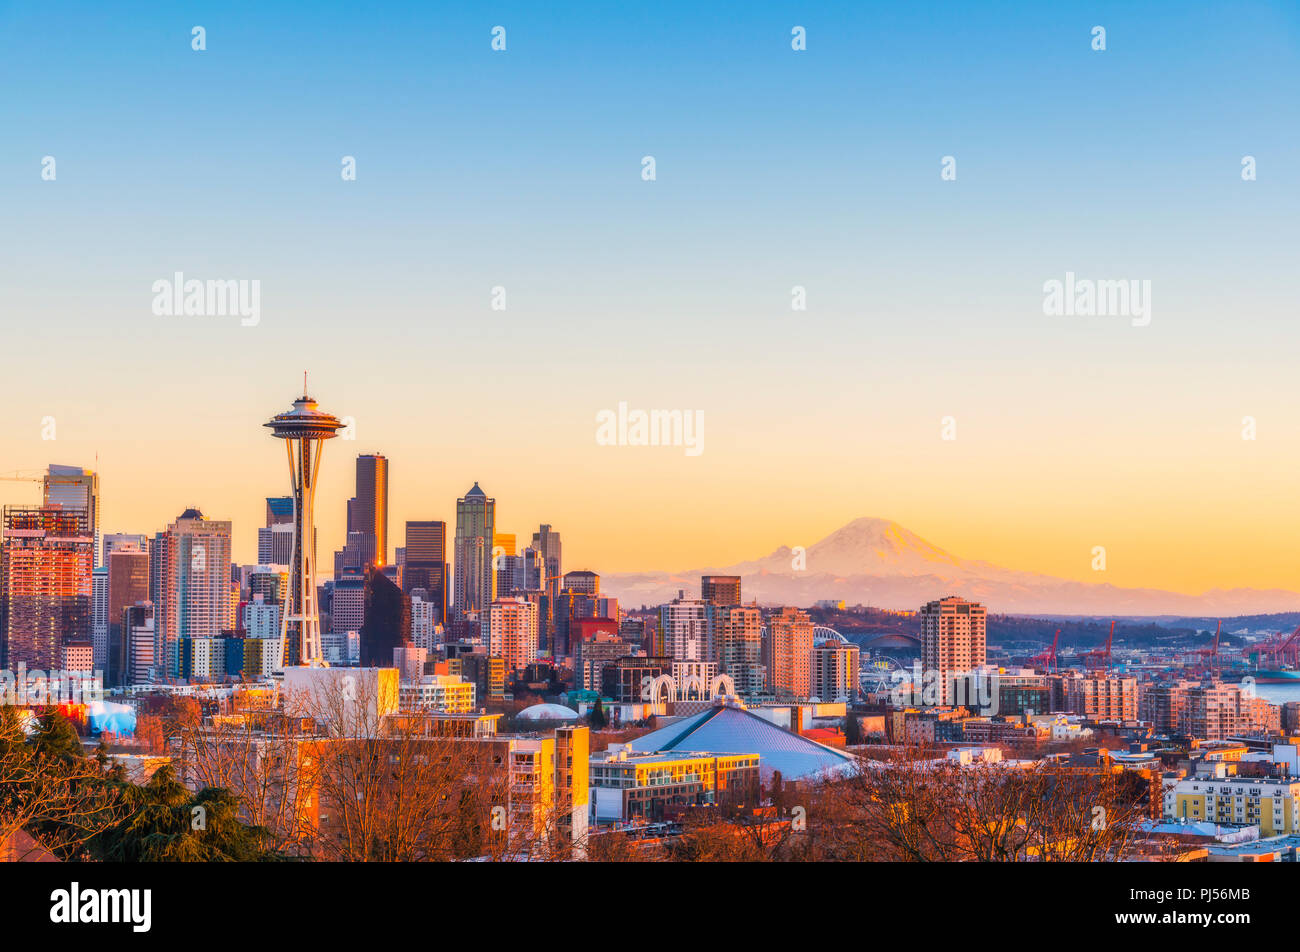 Schöne Seattle City Skyline im Sonnenuntergang, Washington, USA. Stockfoto